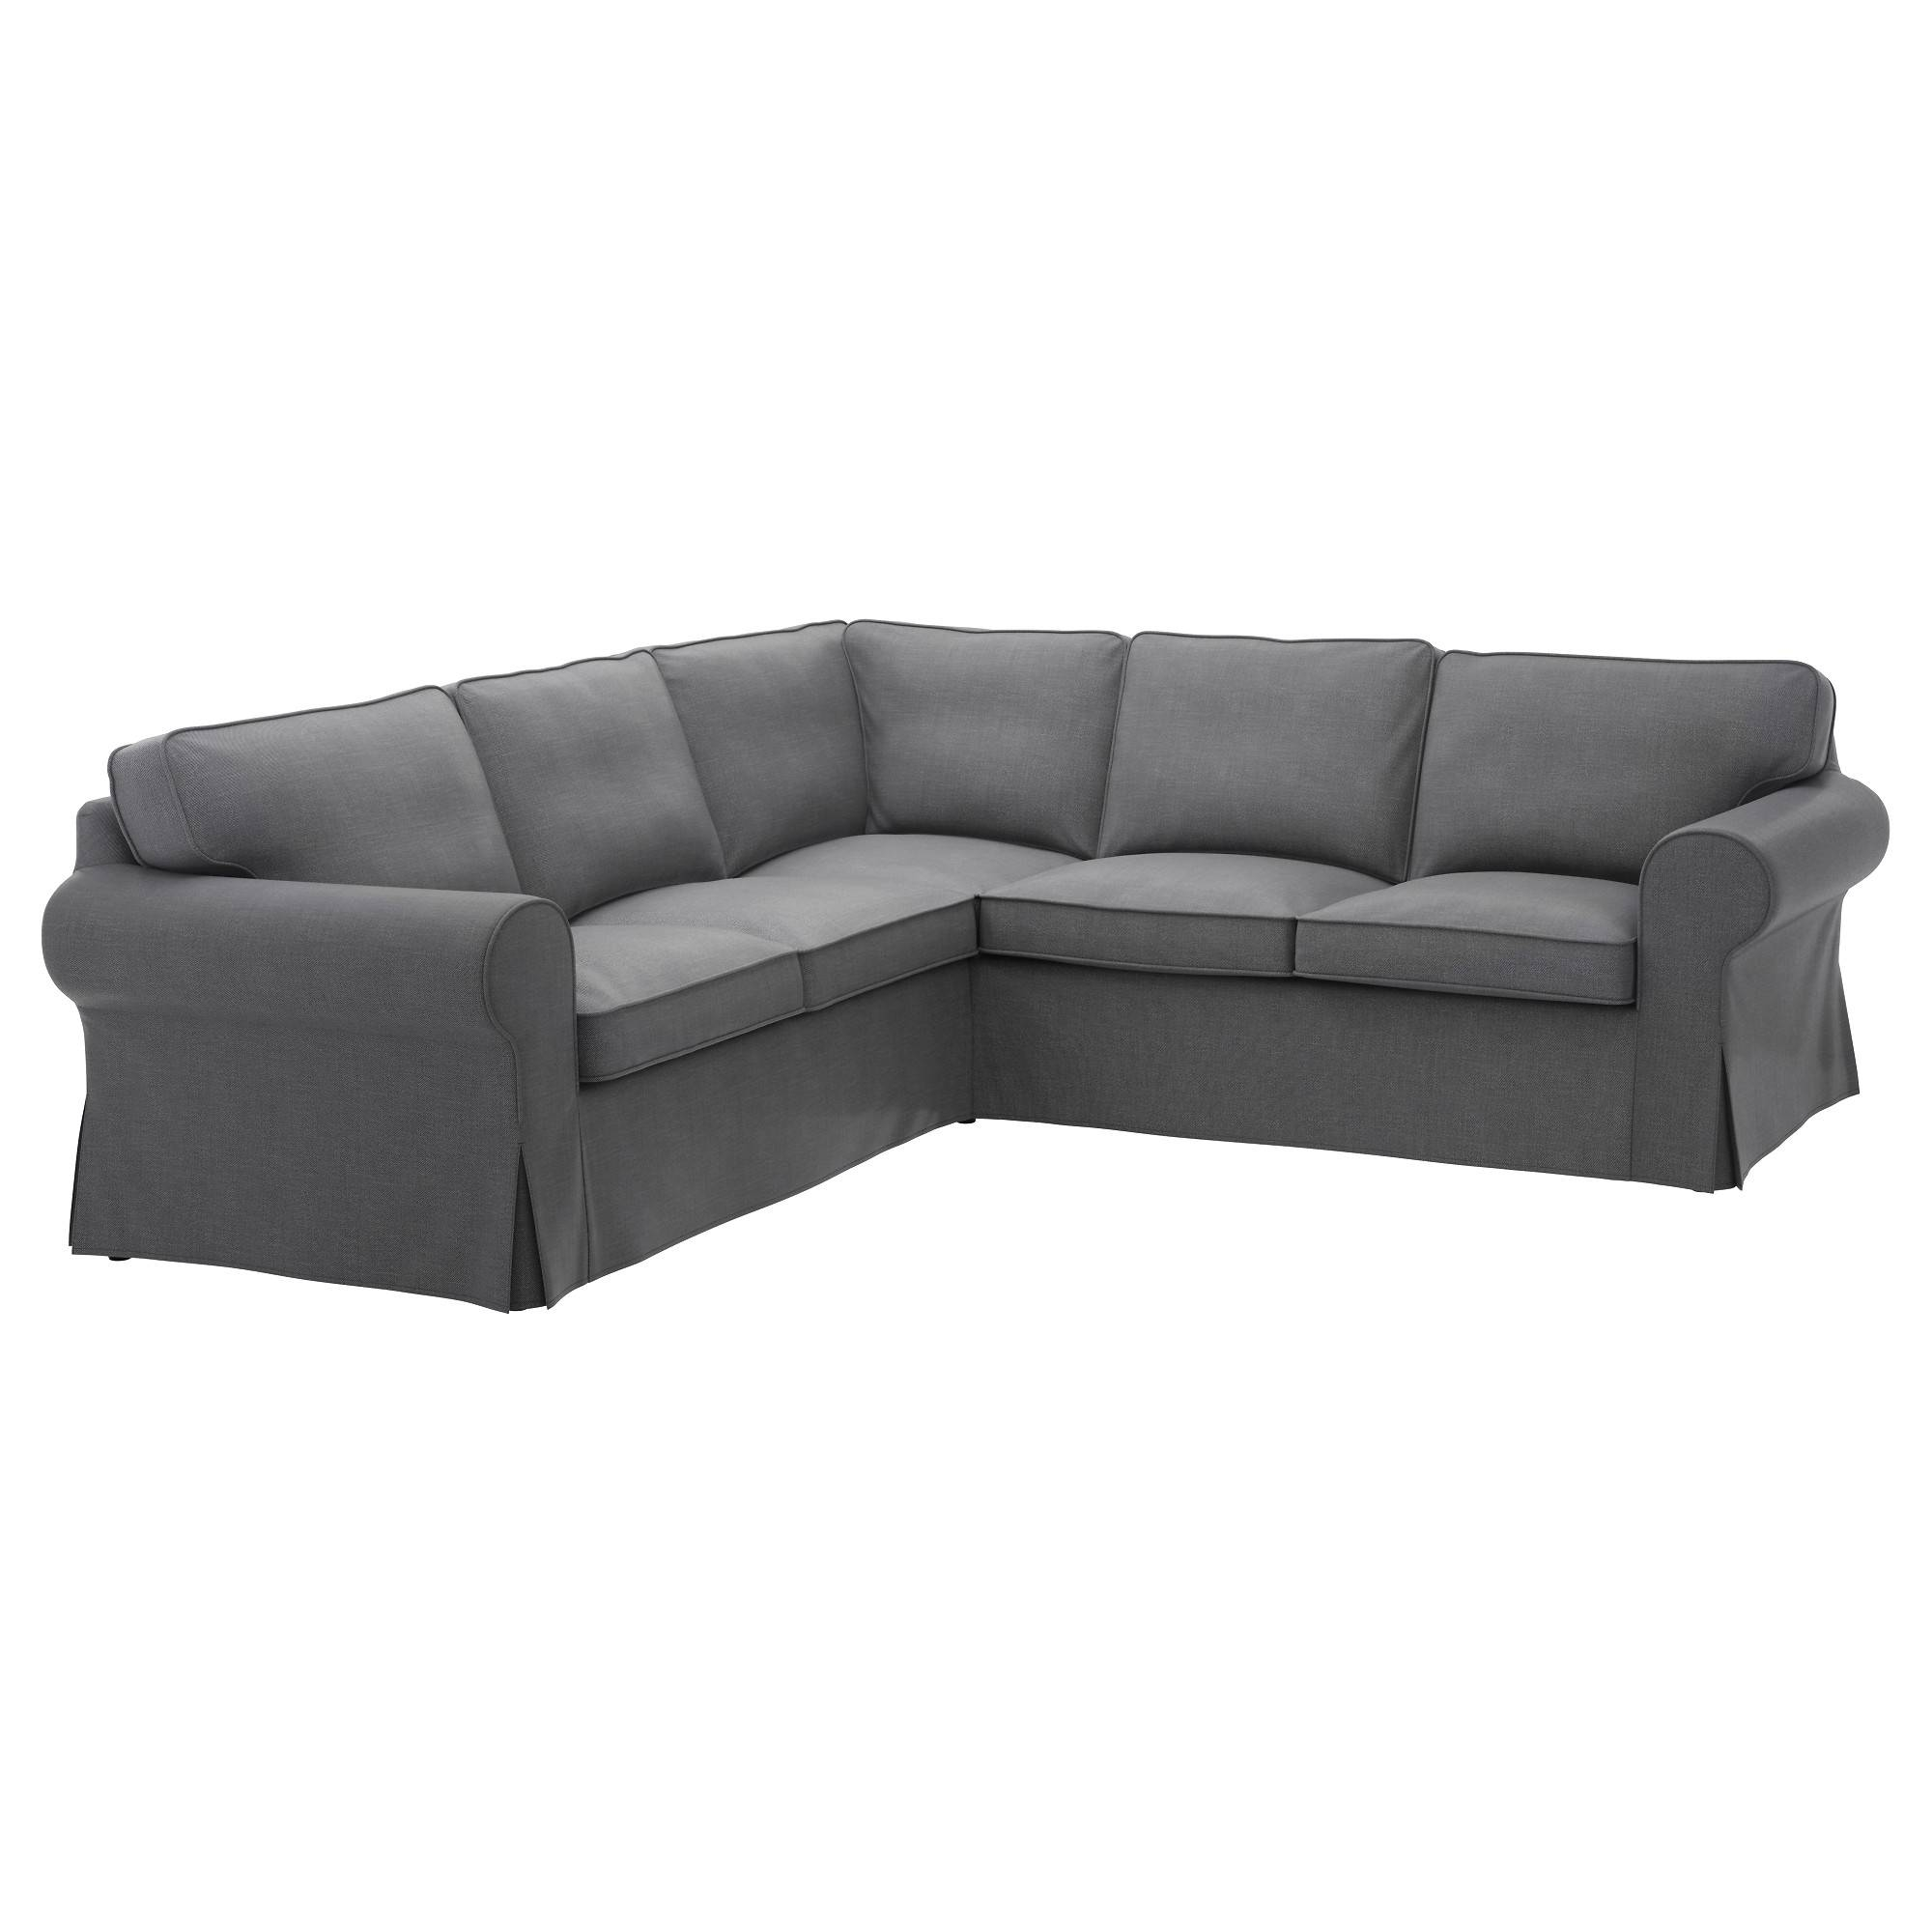 Ektorp Sectional, 4-Seat Corner - Lofallet Beige - Ikea in Sleeper Sofa Sectional Ikea (Image 5 of 25)